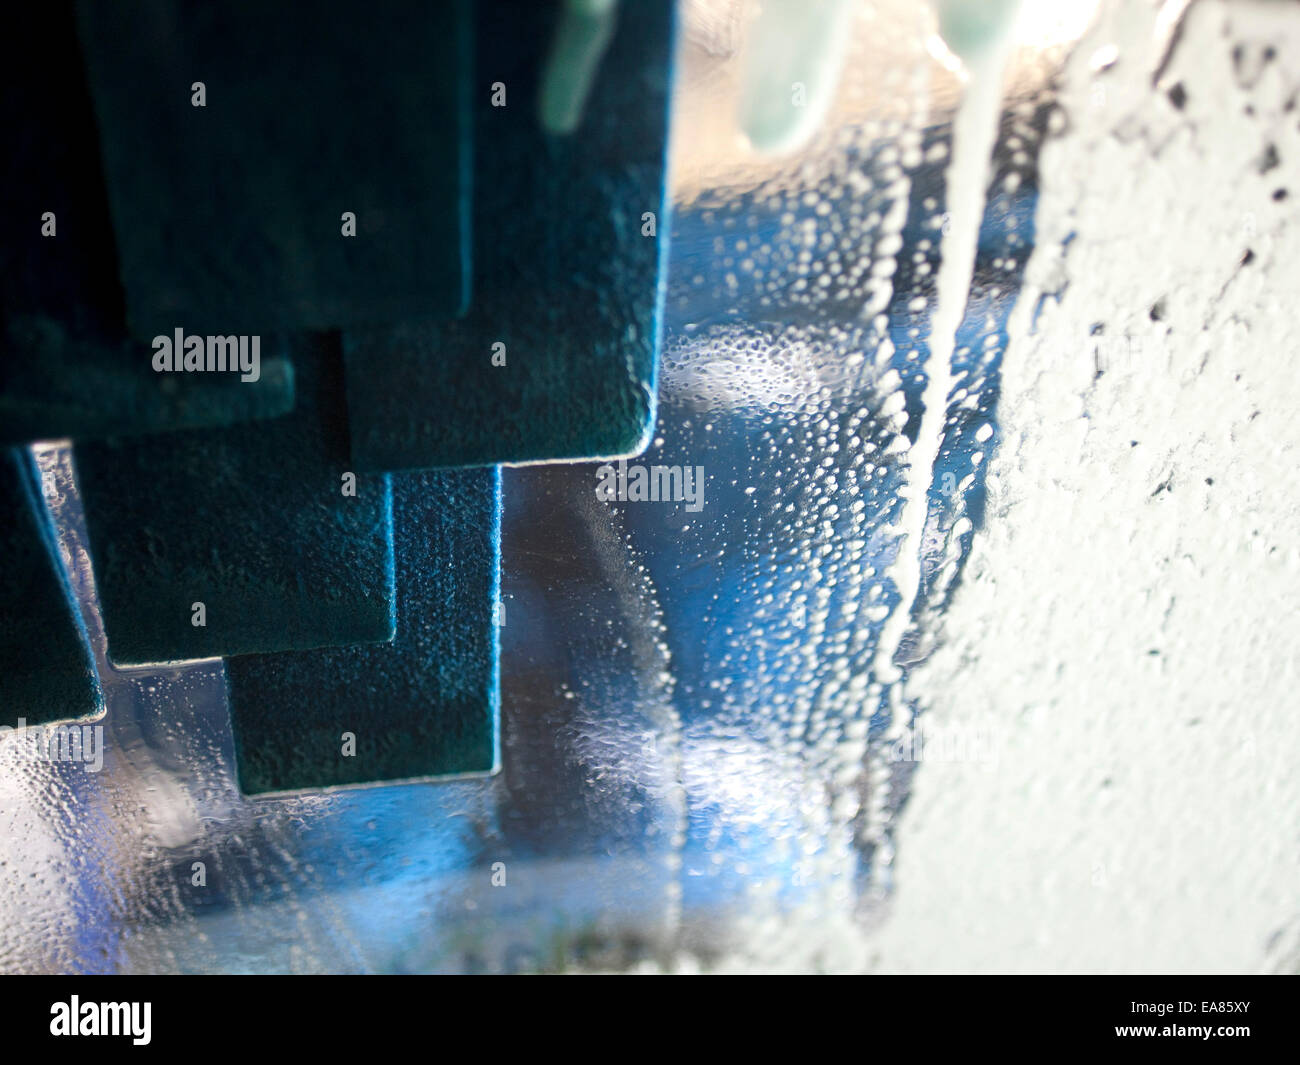 windshield of car being cleaned while going through car wash. - Stock Image